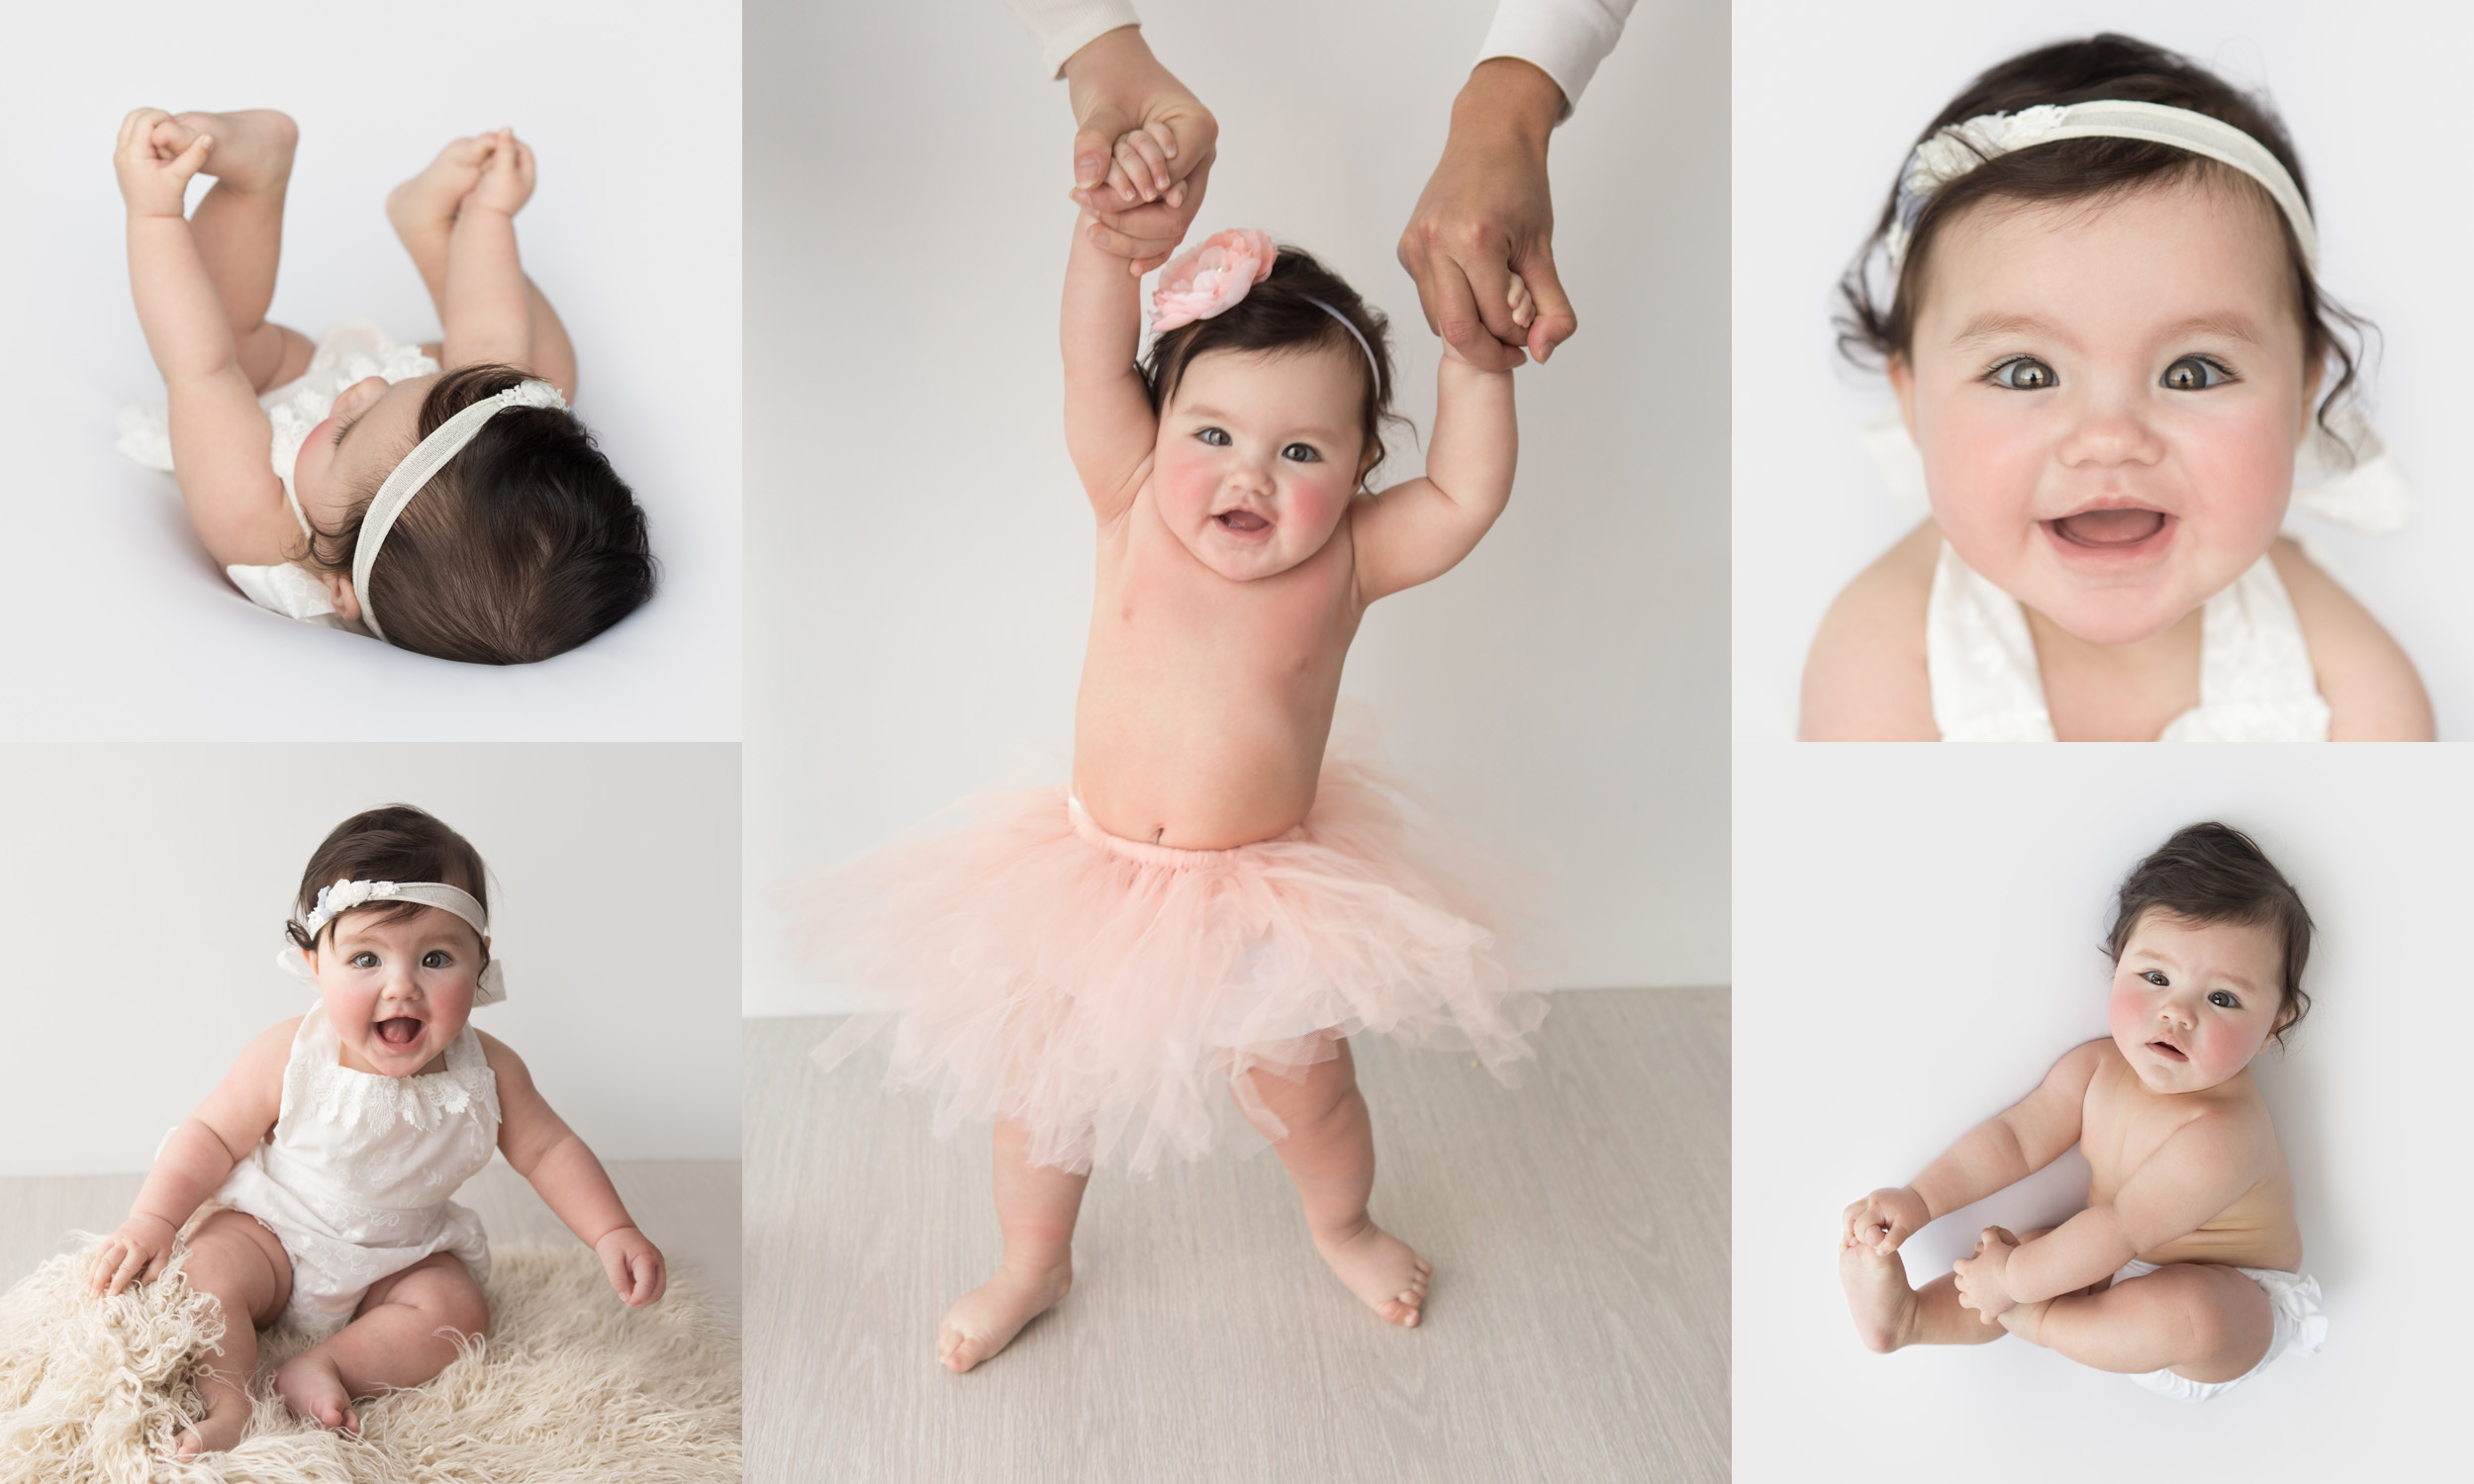 6-month-old-photo-shoot.jpg